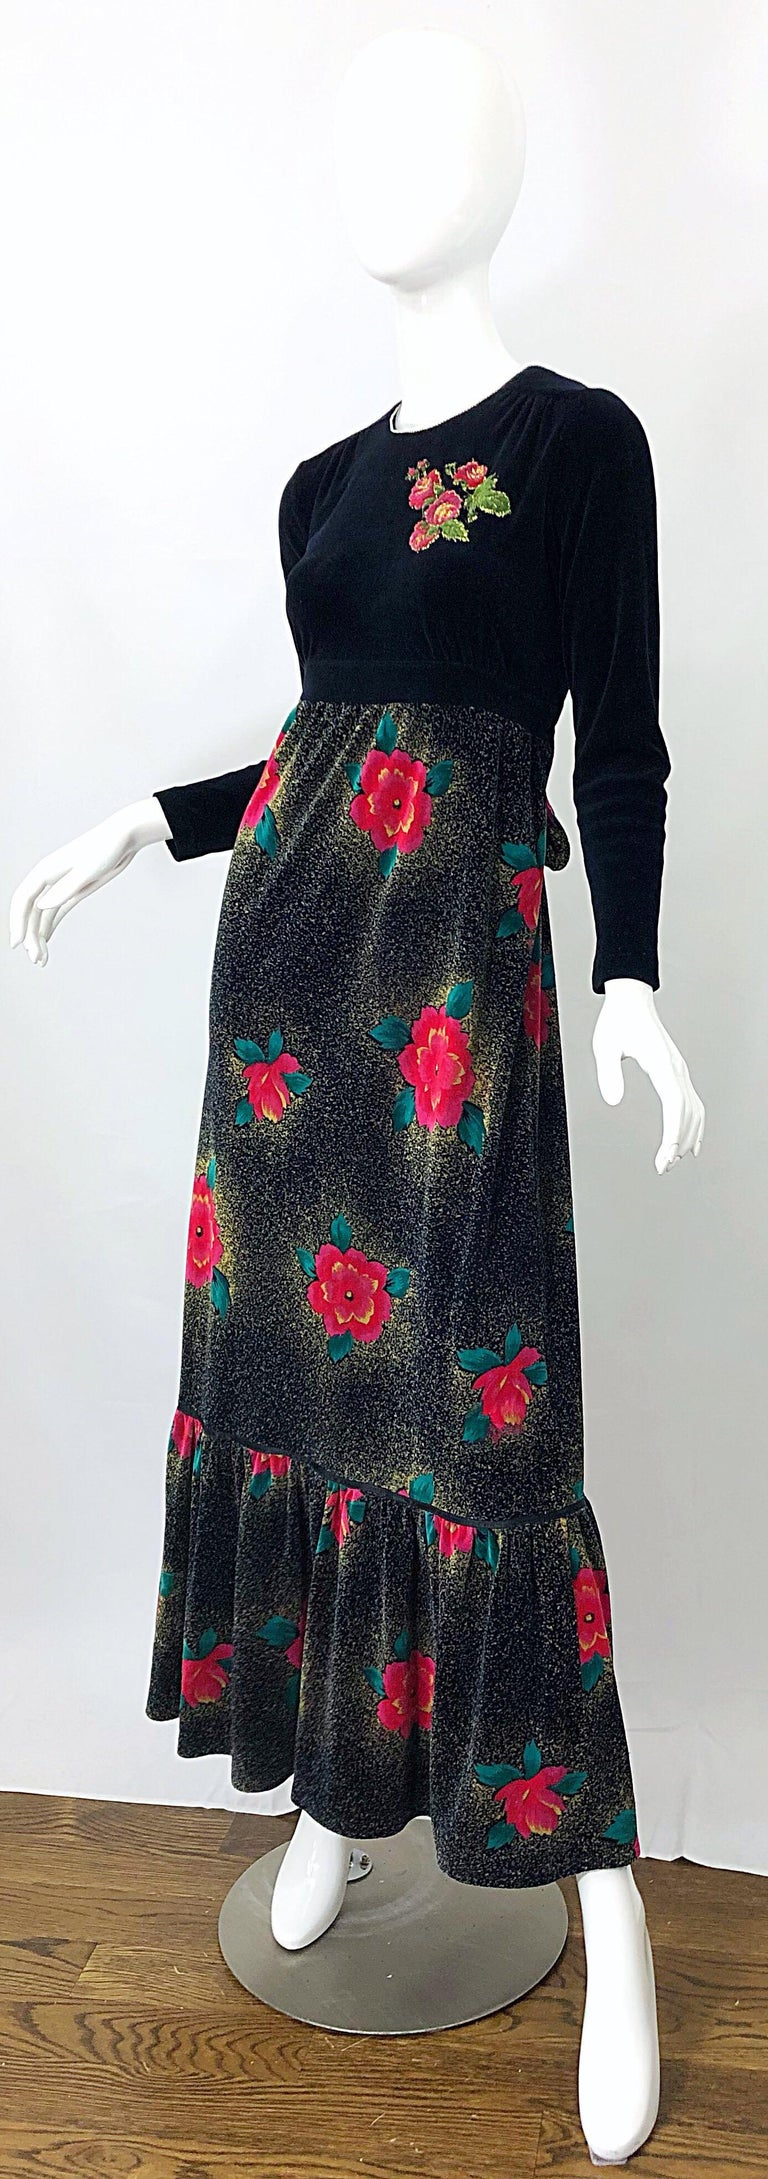 Women's 1970s Poinsettia Print Embroidered Beaded Velvet Velour Holiday Maxi Dress Gown For Sale